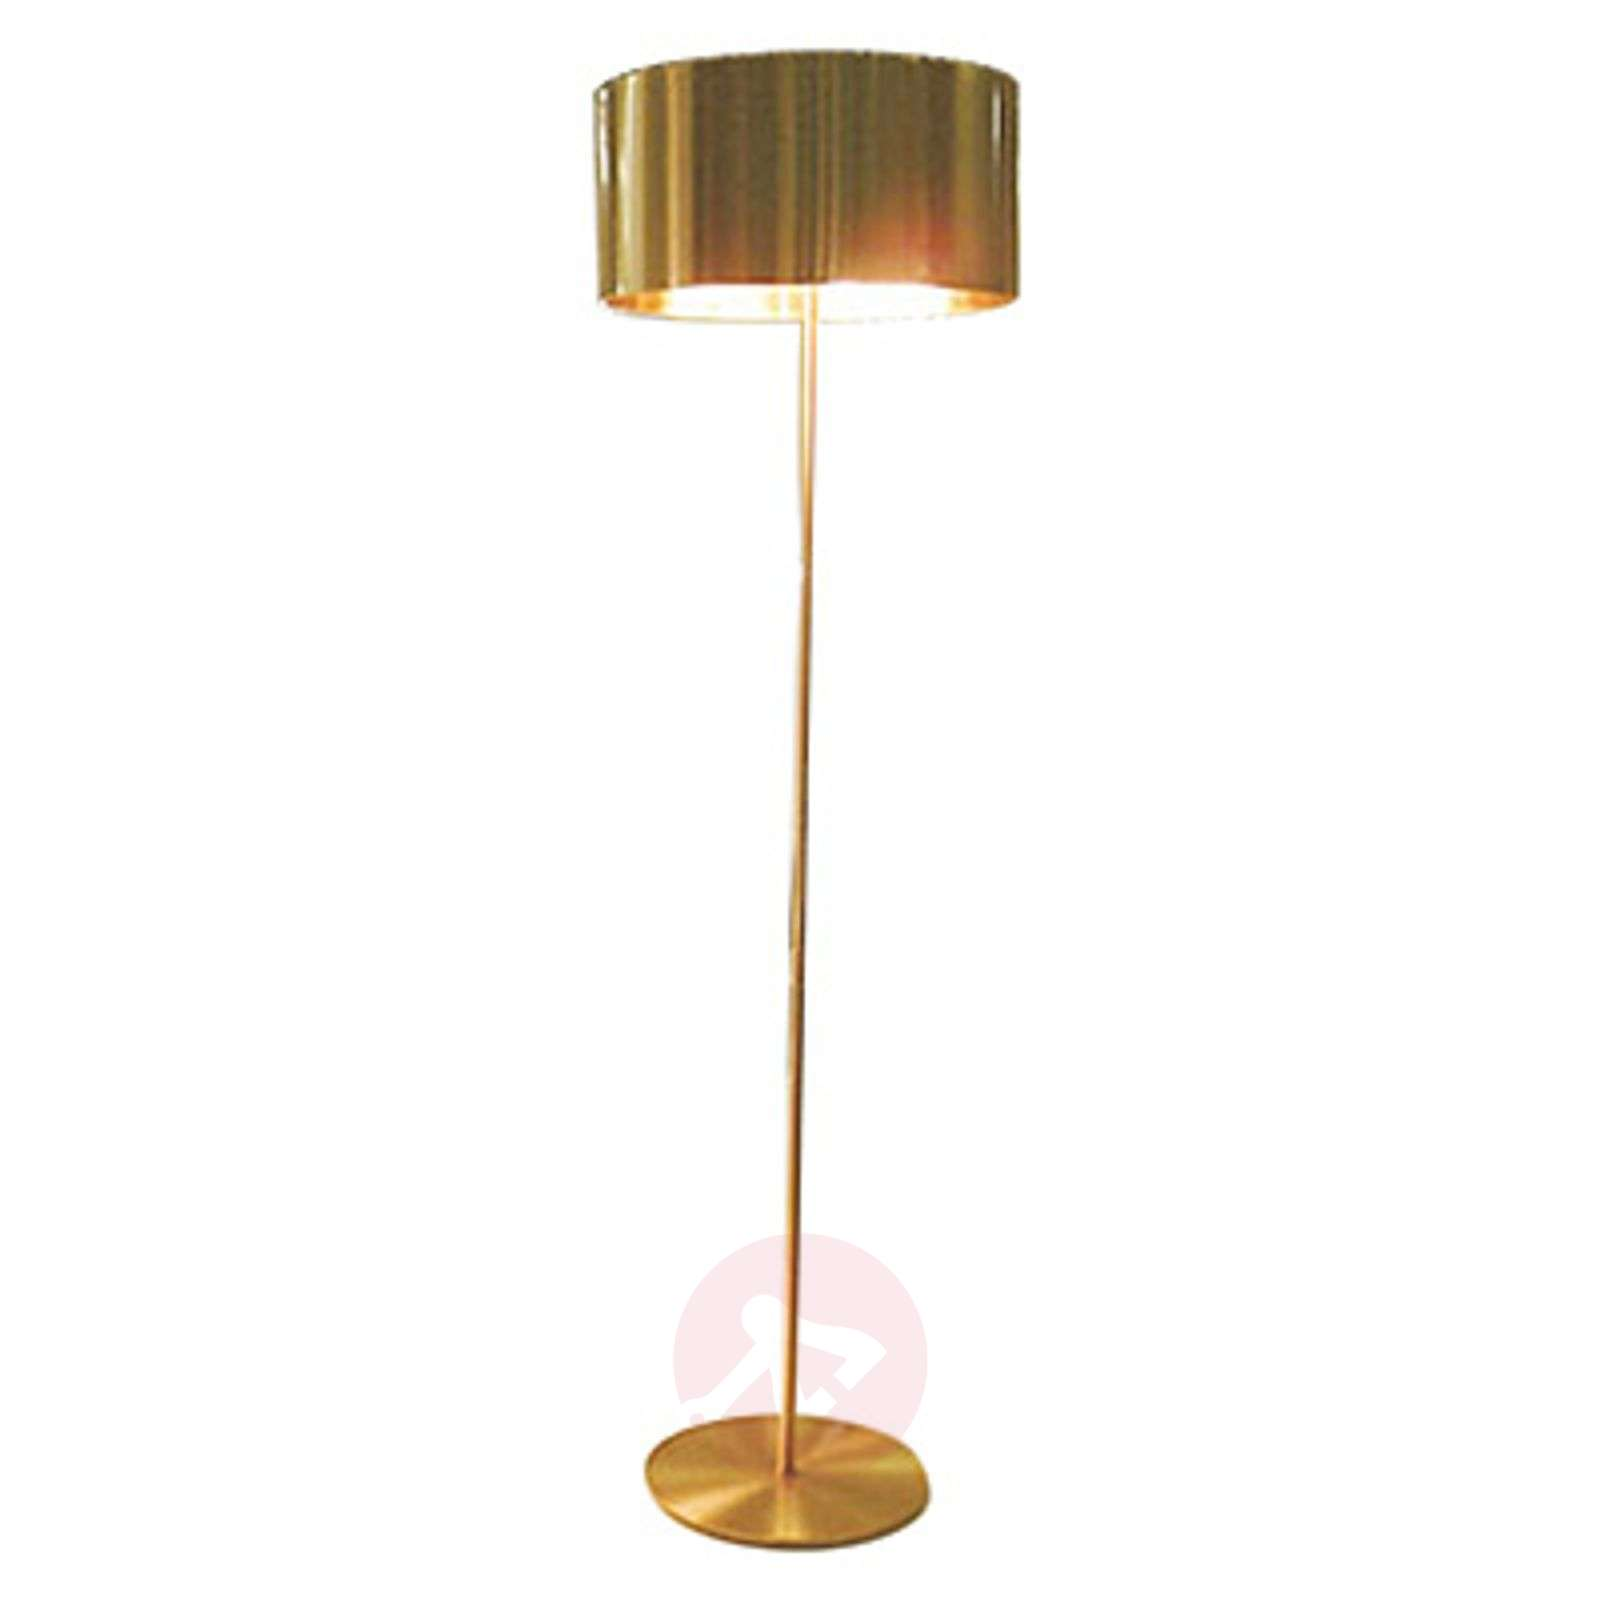 Golden Designer Floor Lamp Switch Lights Ie